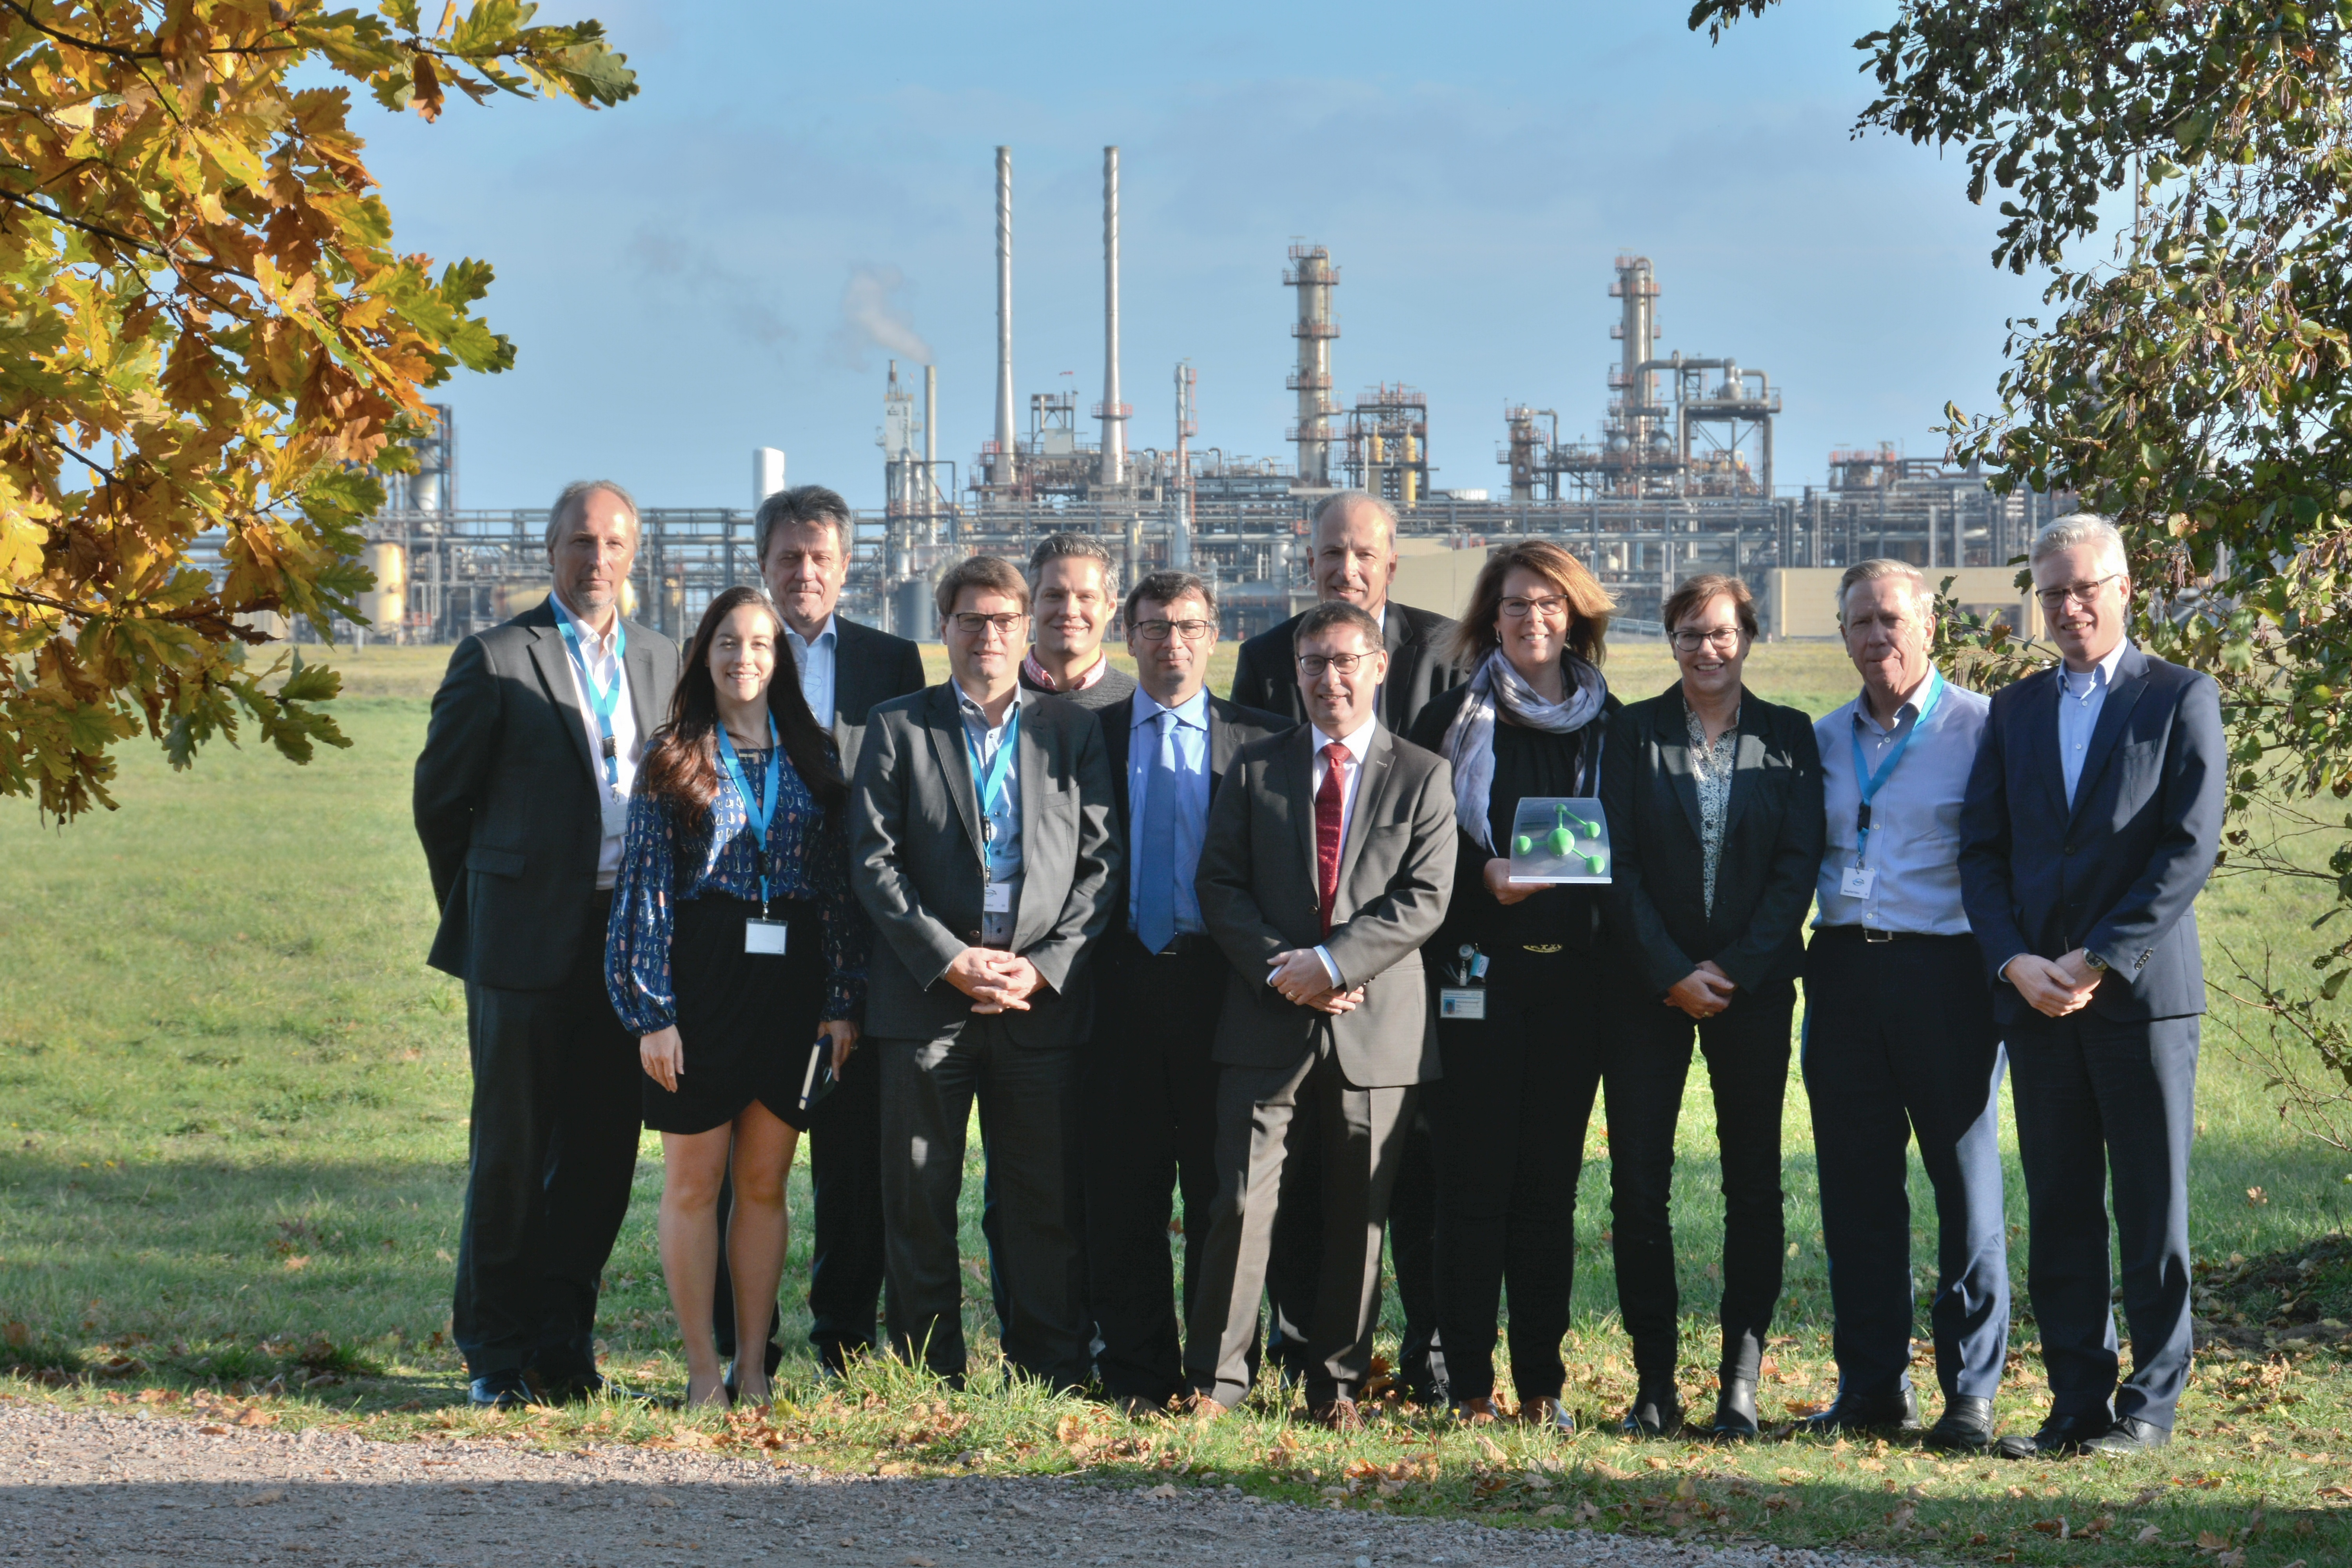 VYNOVA Polymer Comply Europe Best Polymer Producers Awards for Europe 2018 Meeting Wilhelmshaven Stefan Sommer Polymers for Europe Alliance